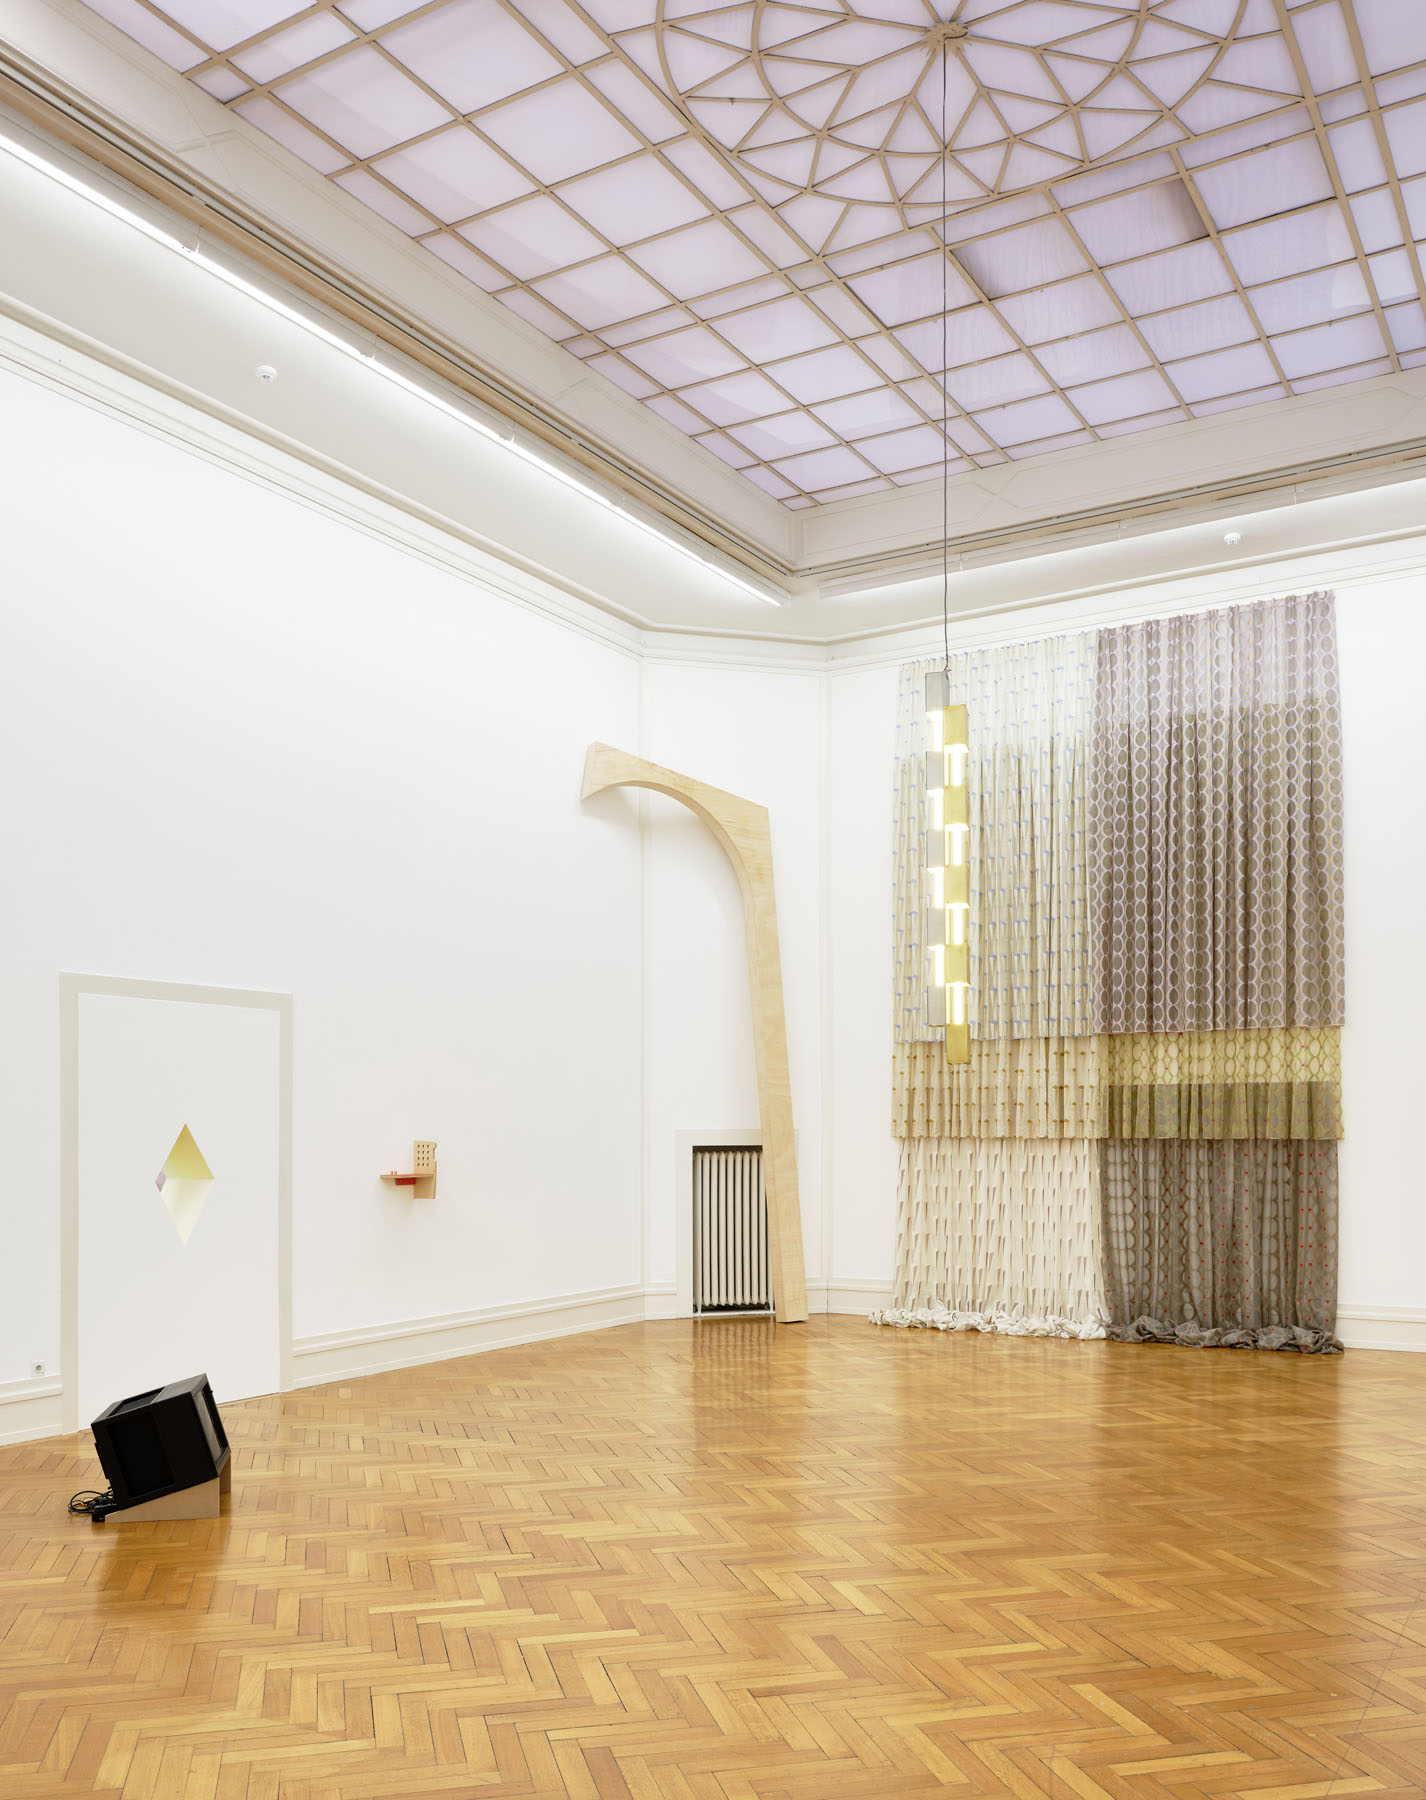 Marc Camille Chaimowicz At Kunsthalle Bern Art Viewer